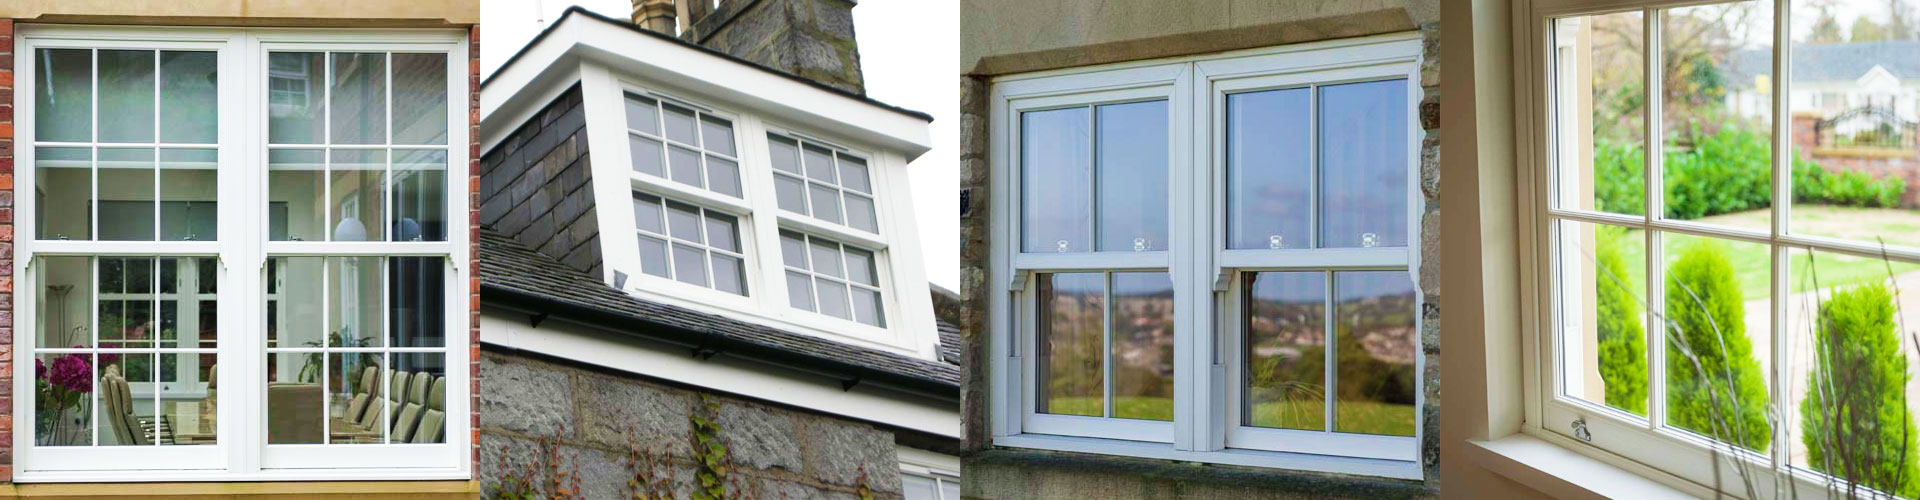 High Quality Sash Windows Aberdeen, Aberdeenshire & North East Scotland